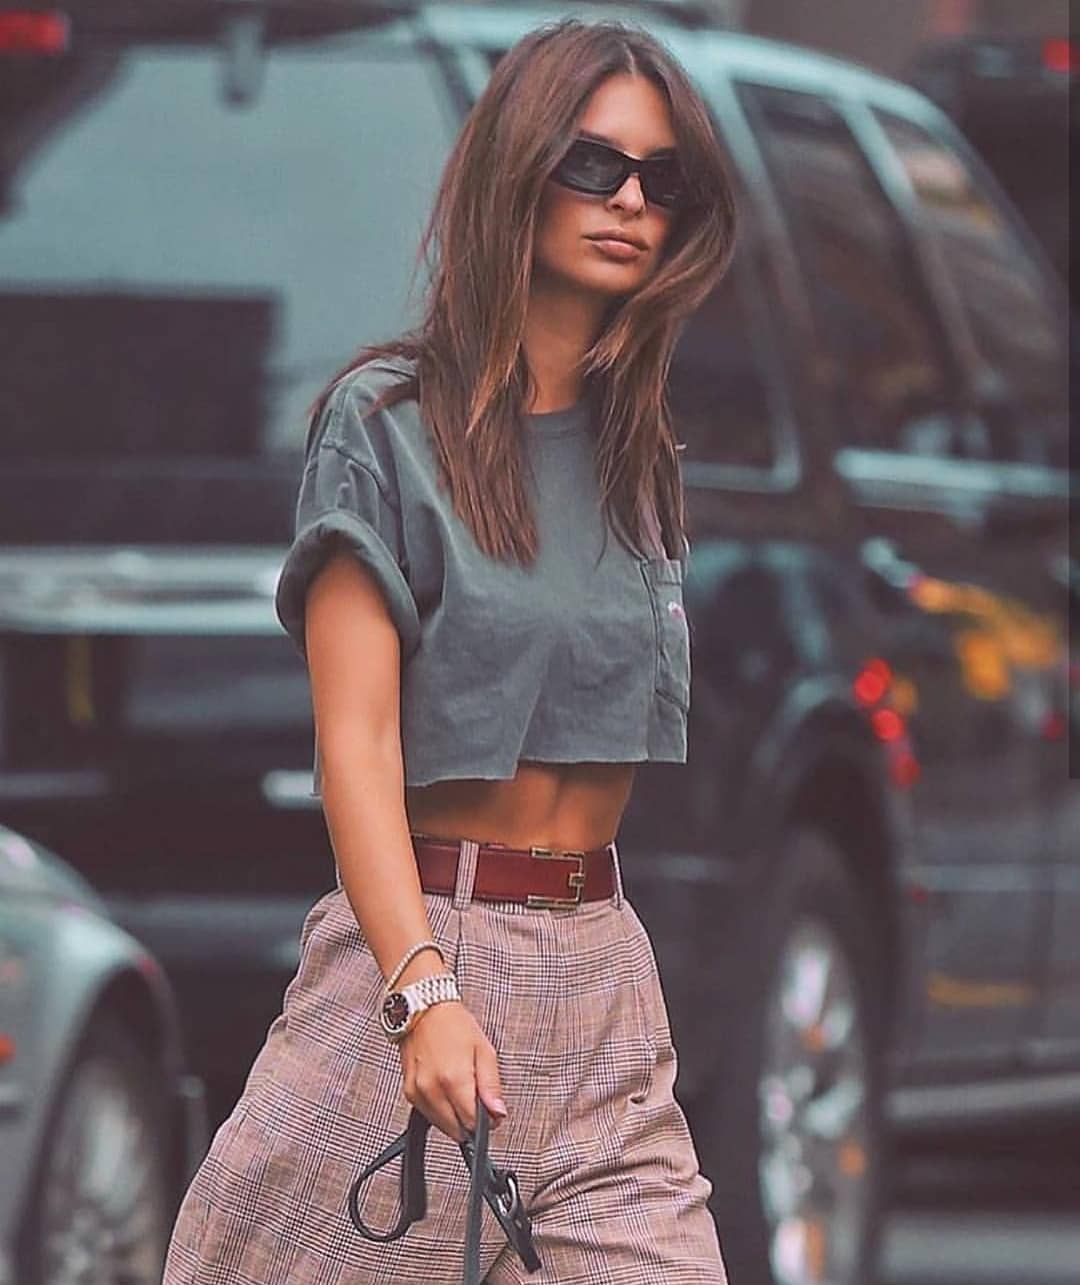 Khaki Green Crop Top And Plaid Wide Pants For Summer Casual Street Walks 2019